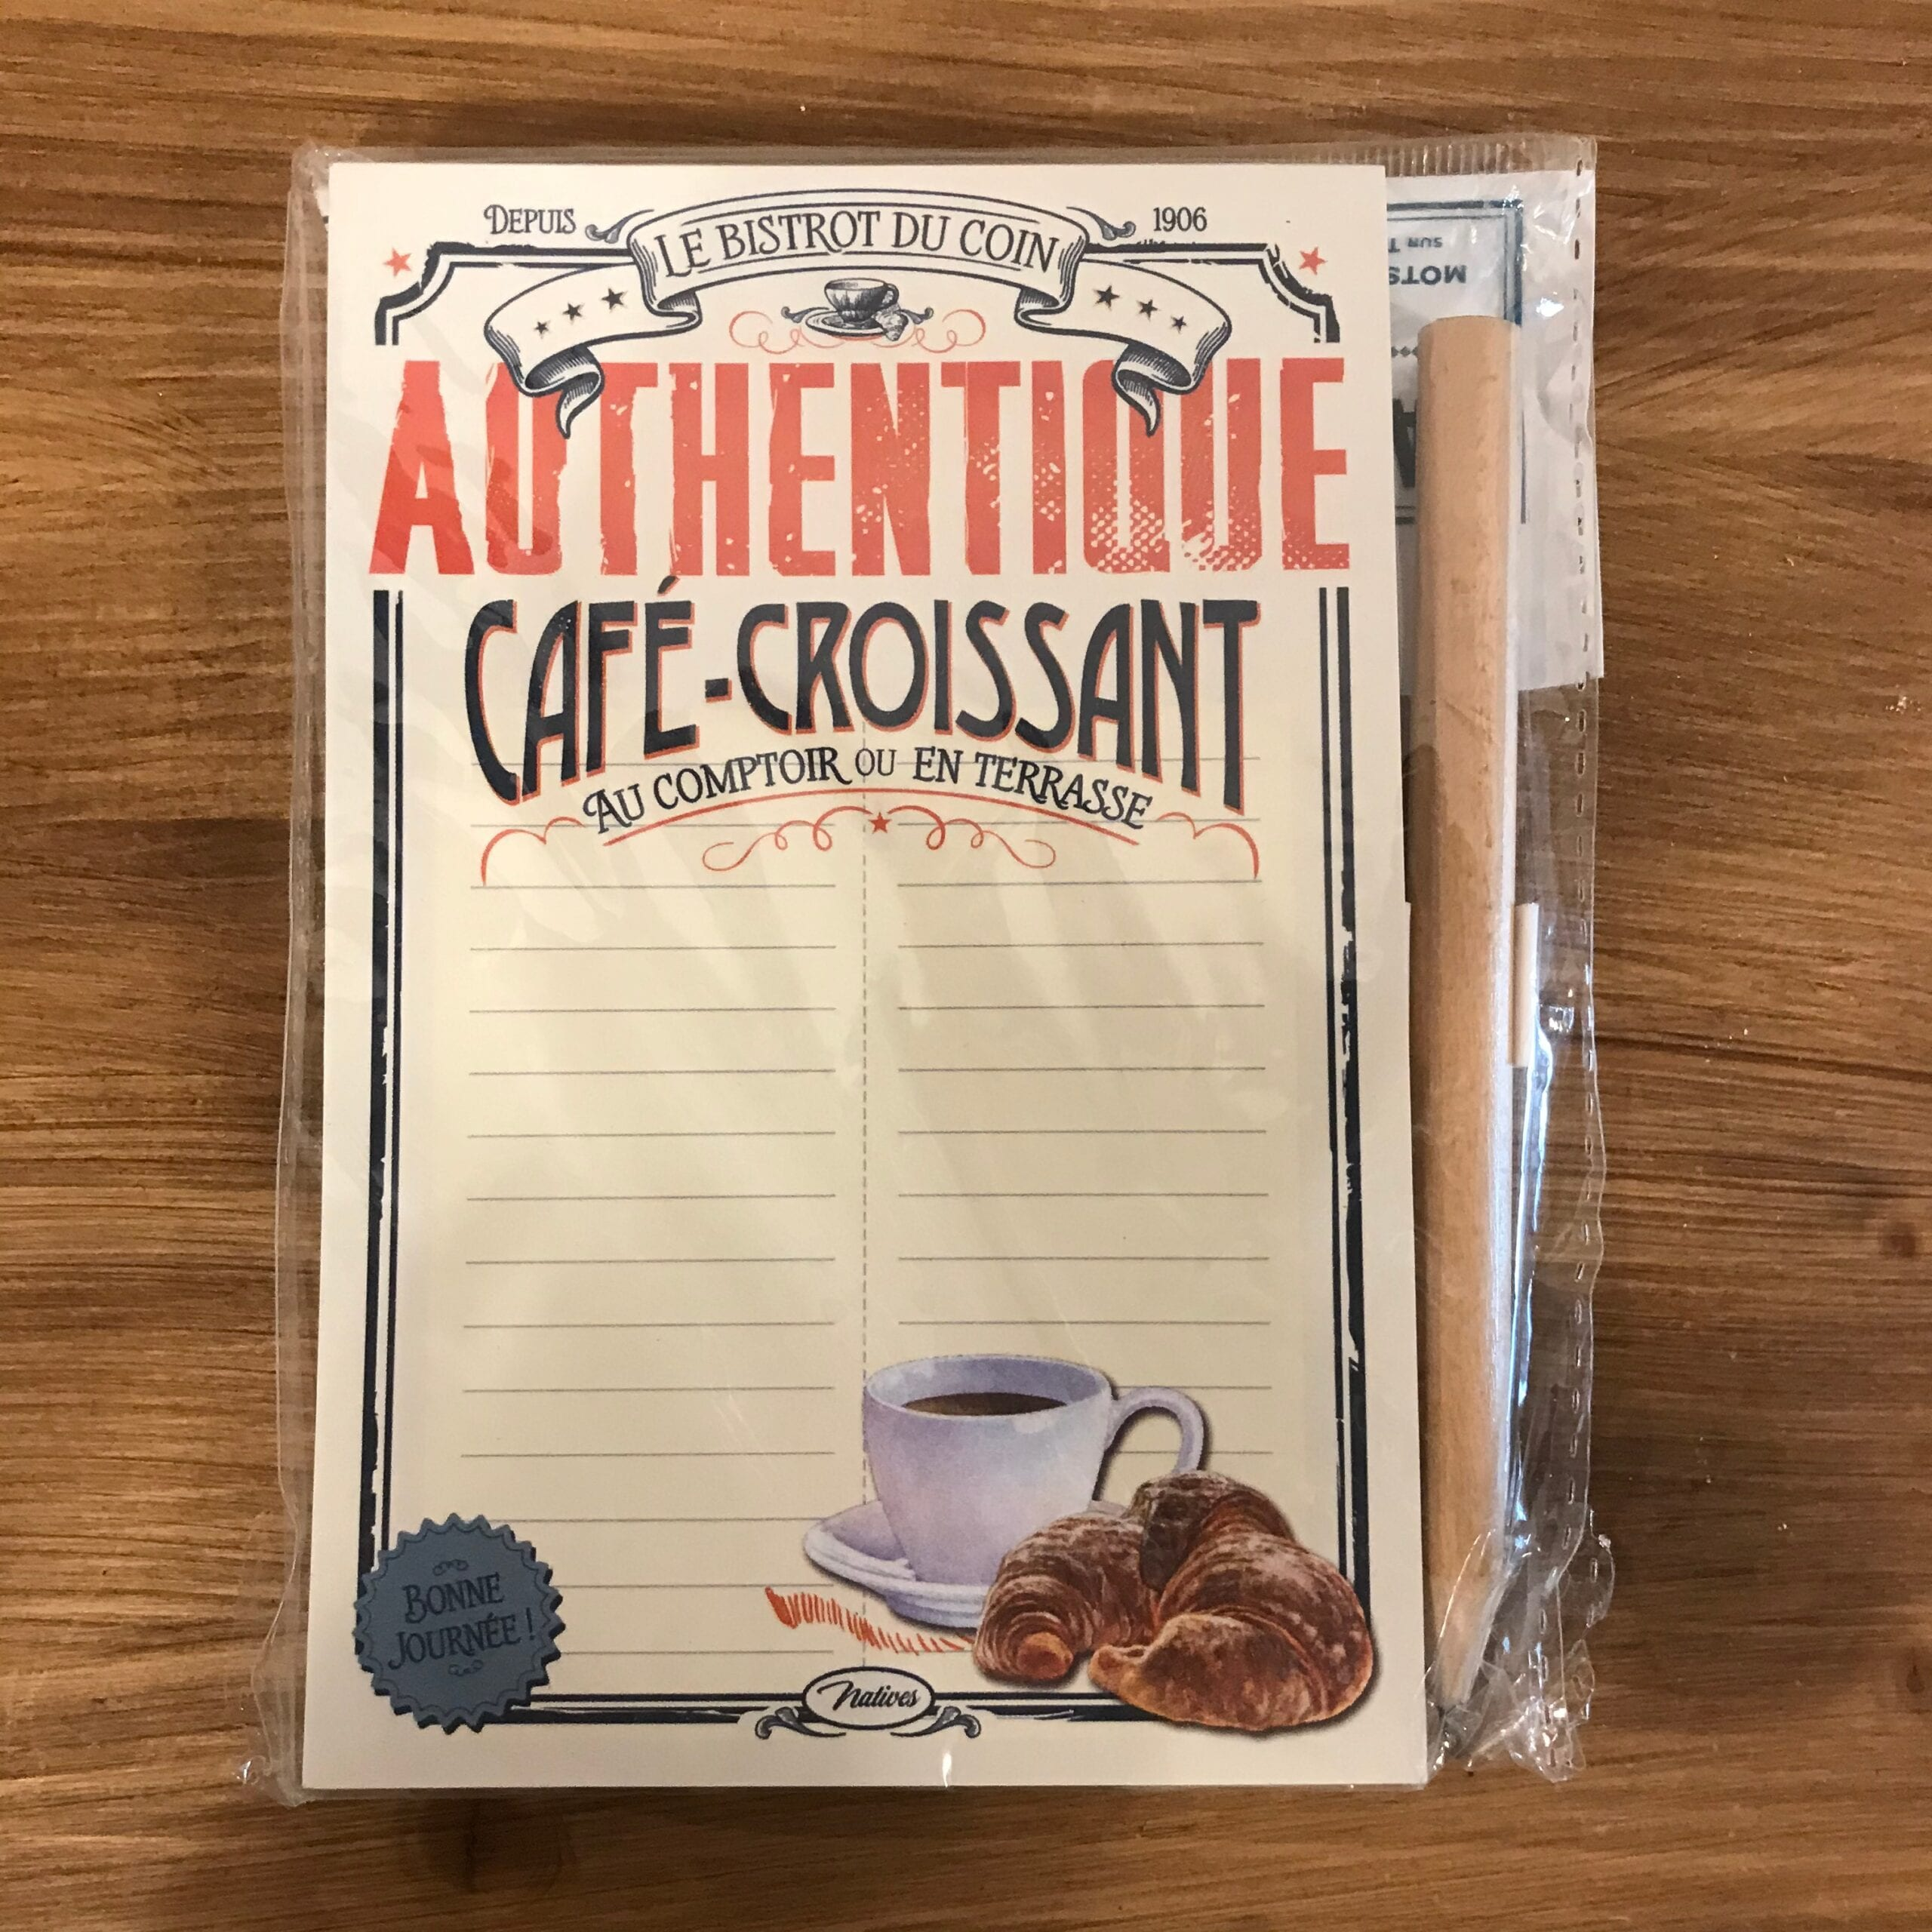 Bloc-Notes con calamita – Authentique cafè